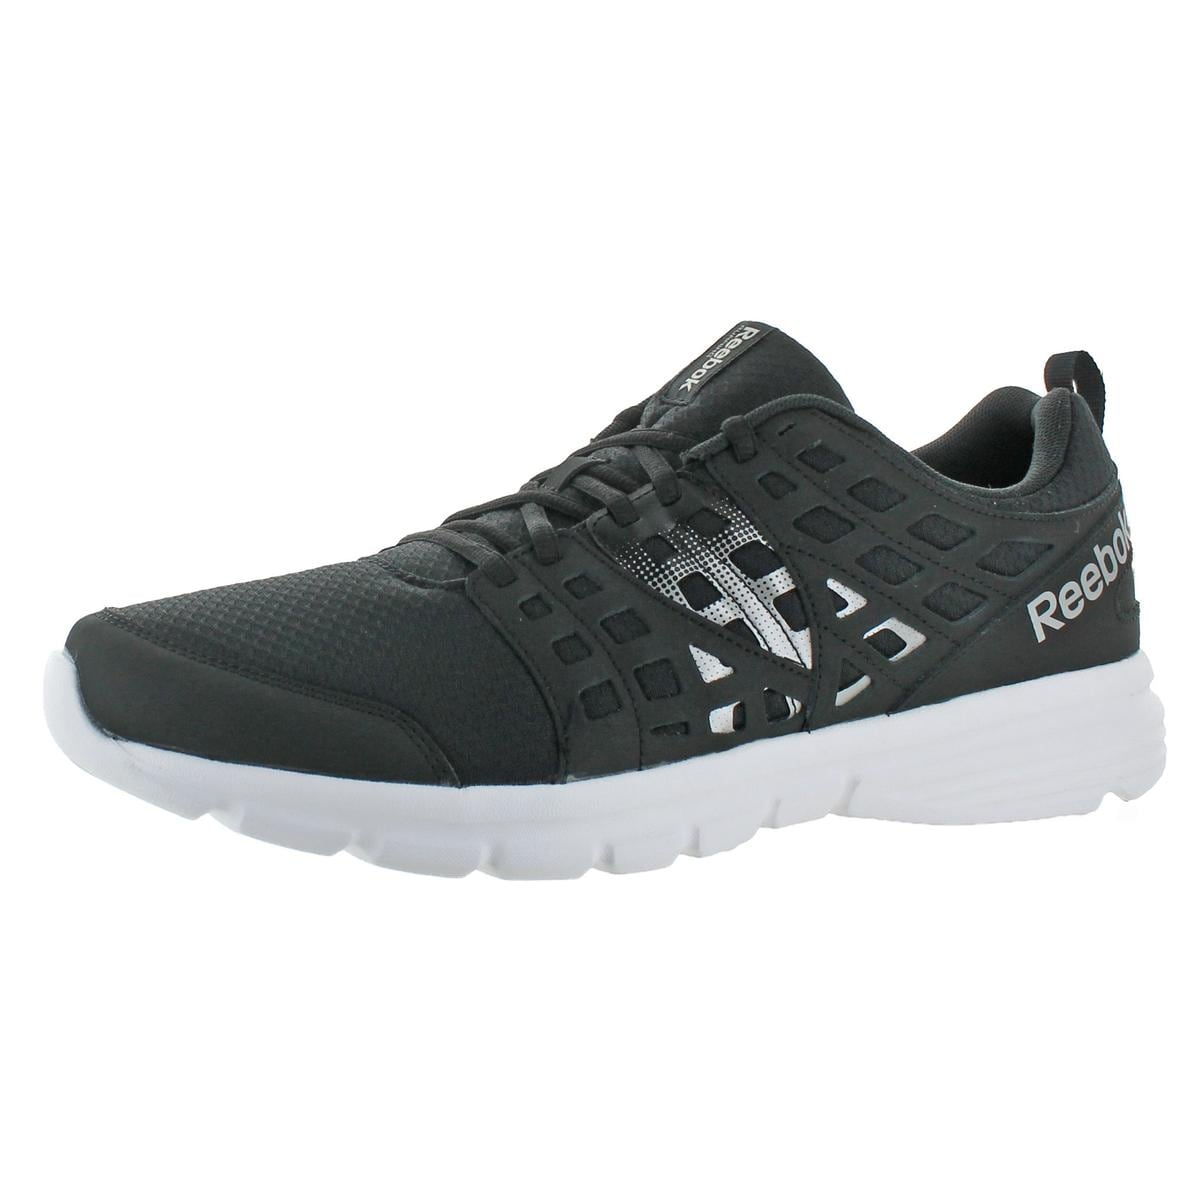 d50f264451555 Shop Reebok Mens Speed Rise Running Shoes MemoryTech Lightweight - Free  Shipping Today - Overstock - 22680352